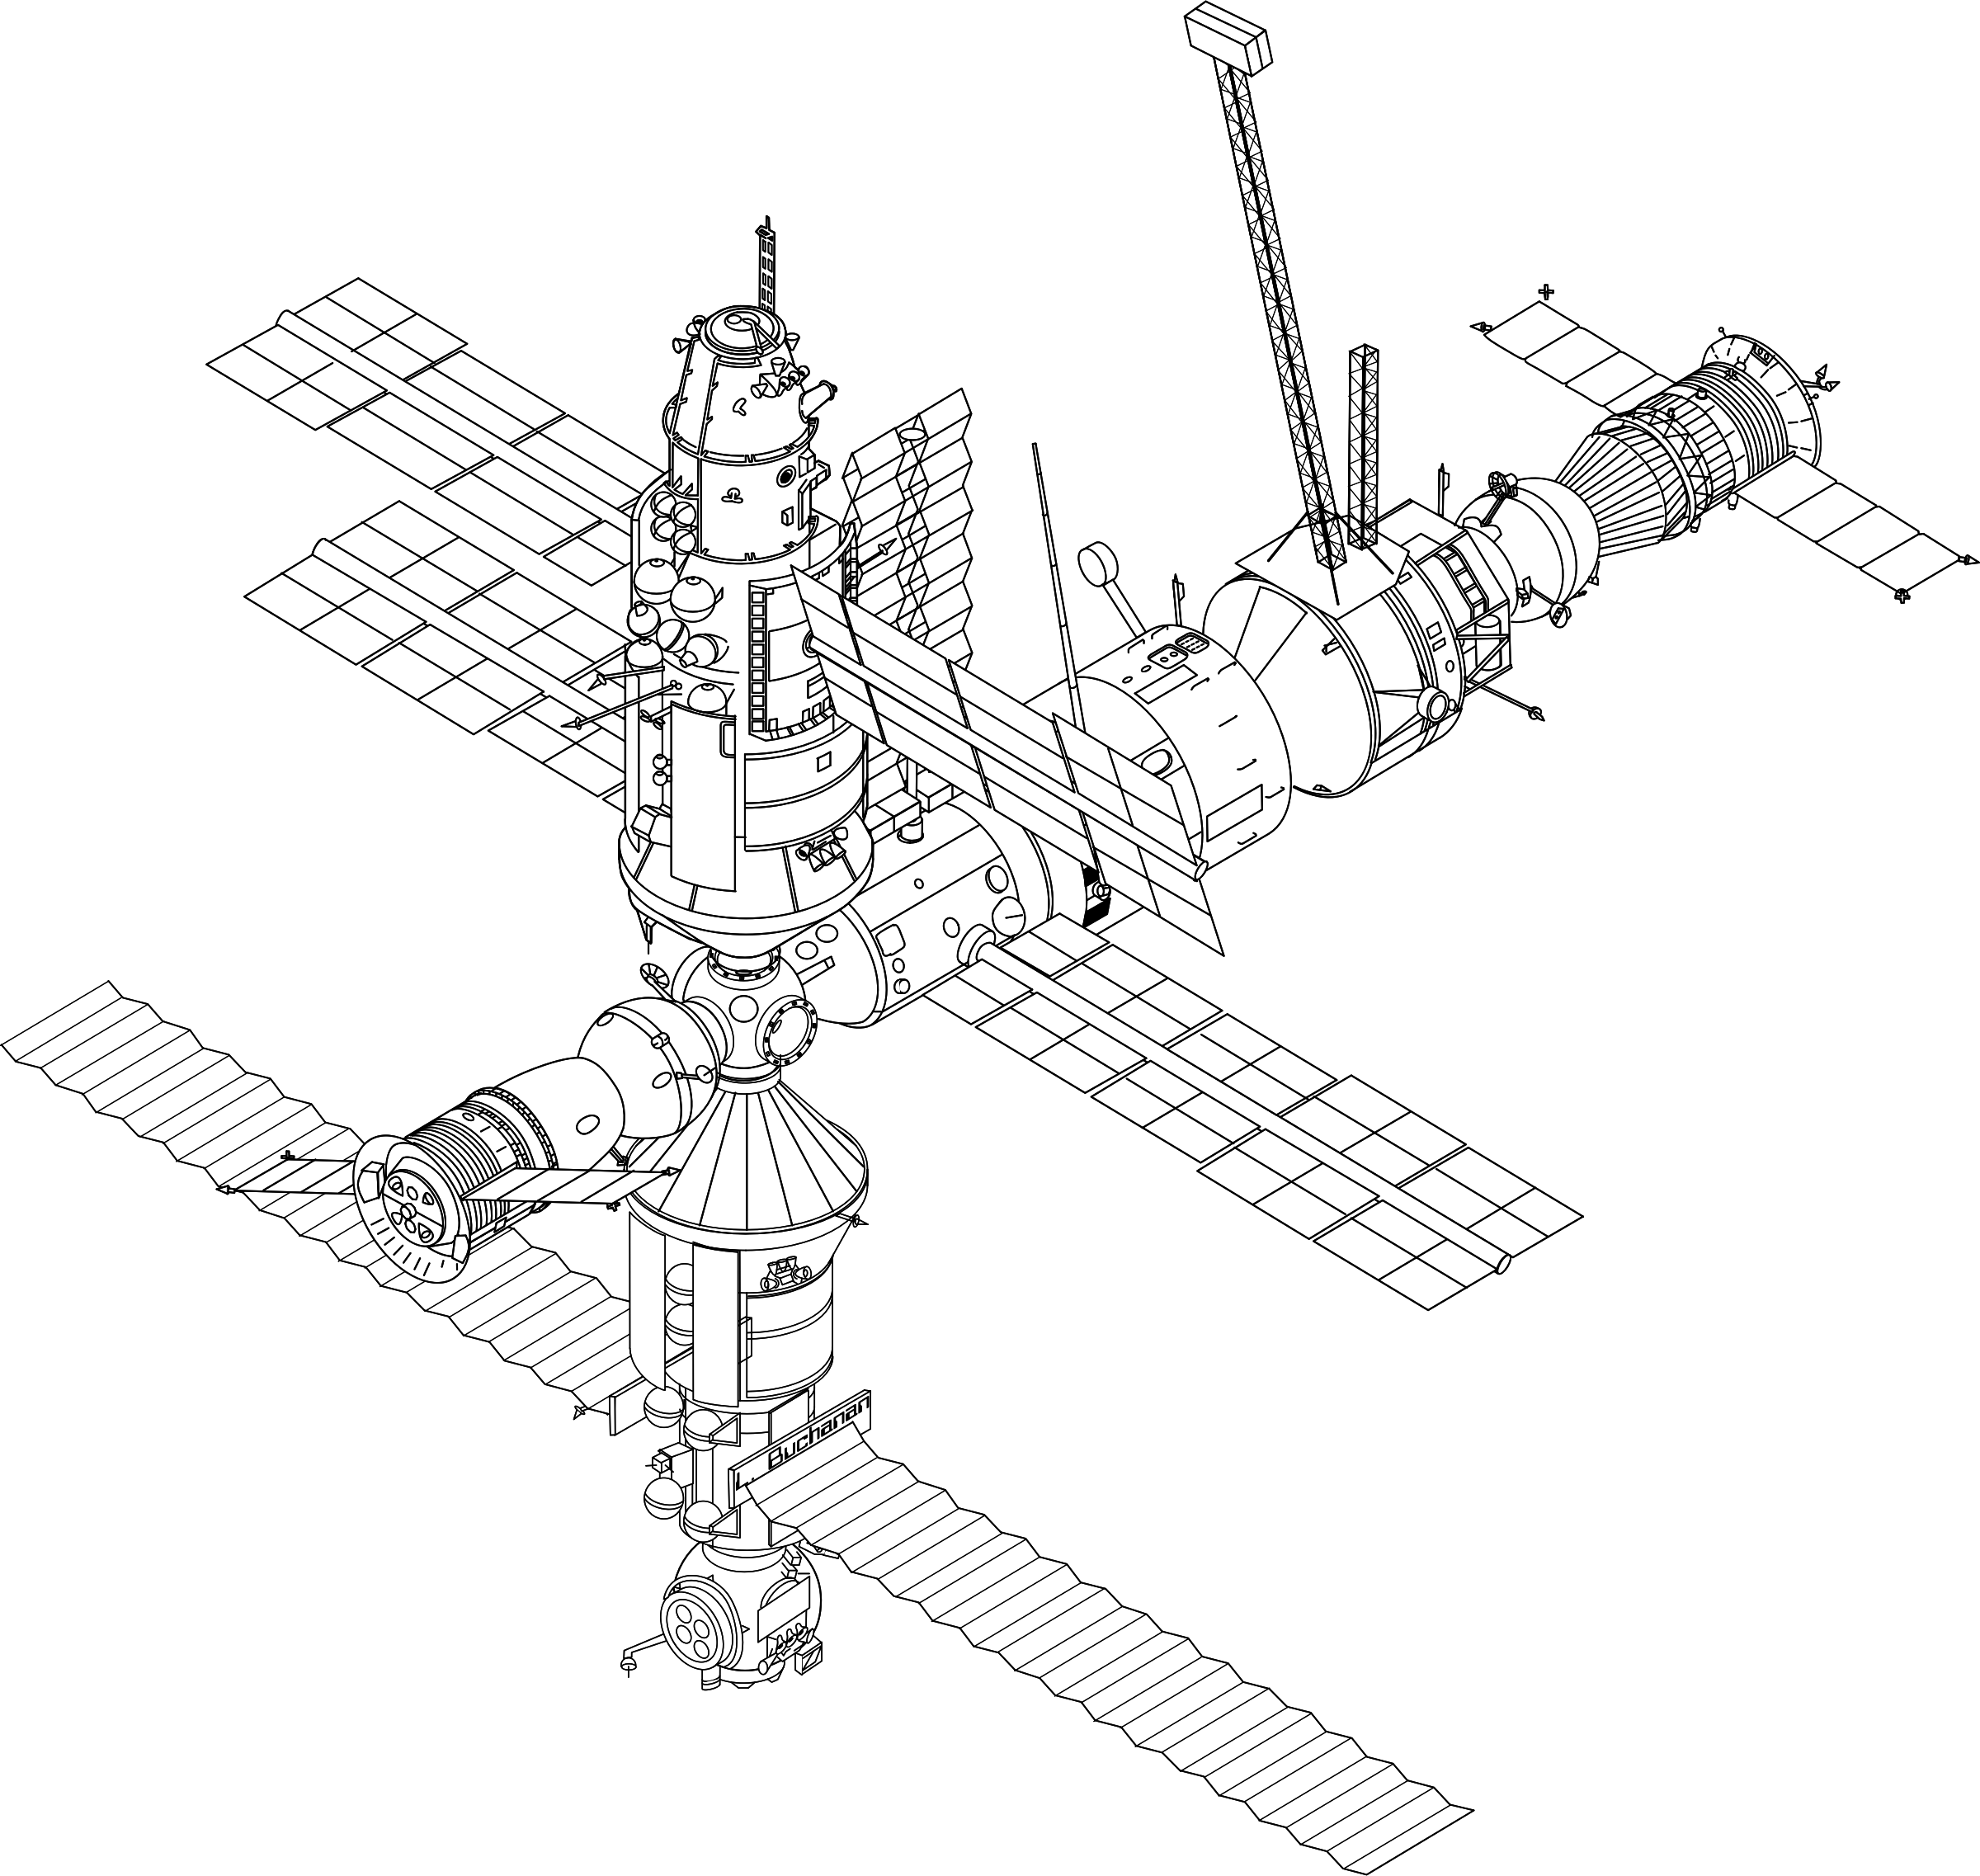 Future clipart space mission. Satellite drawing at getdrawings